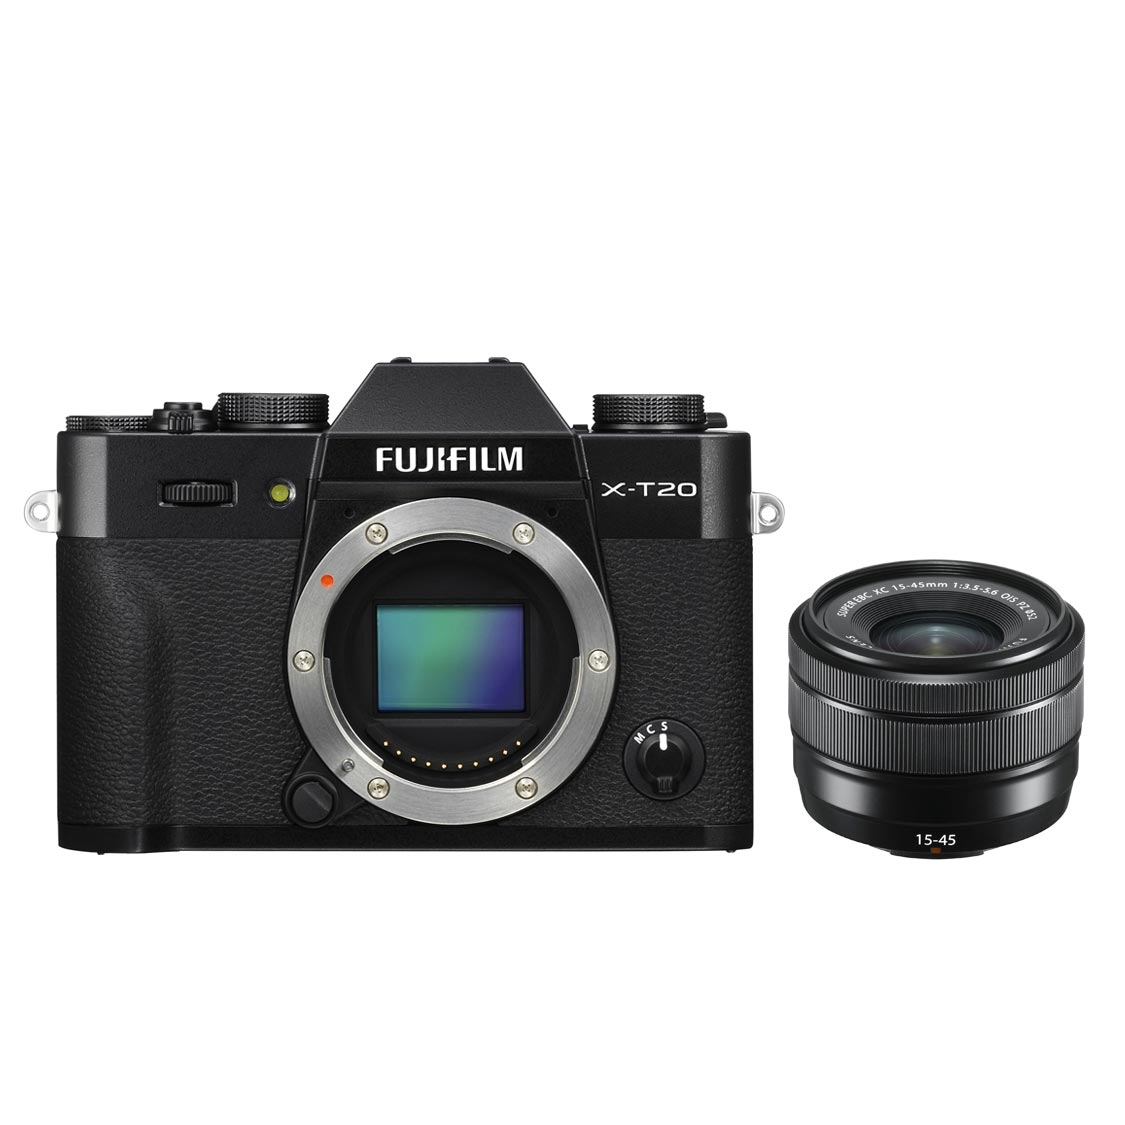 Fuji X-T20 Camera (black) with 15-45mm PZ Lens